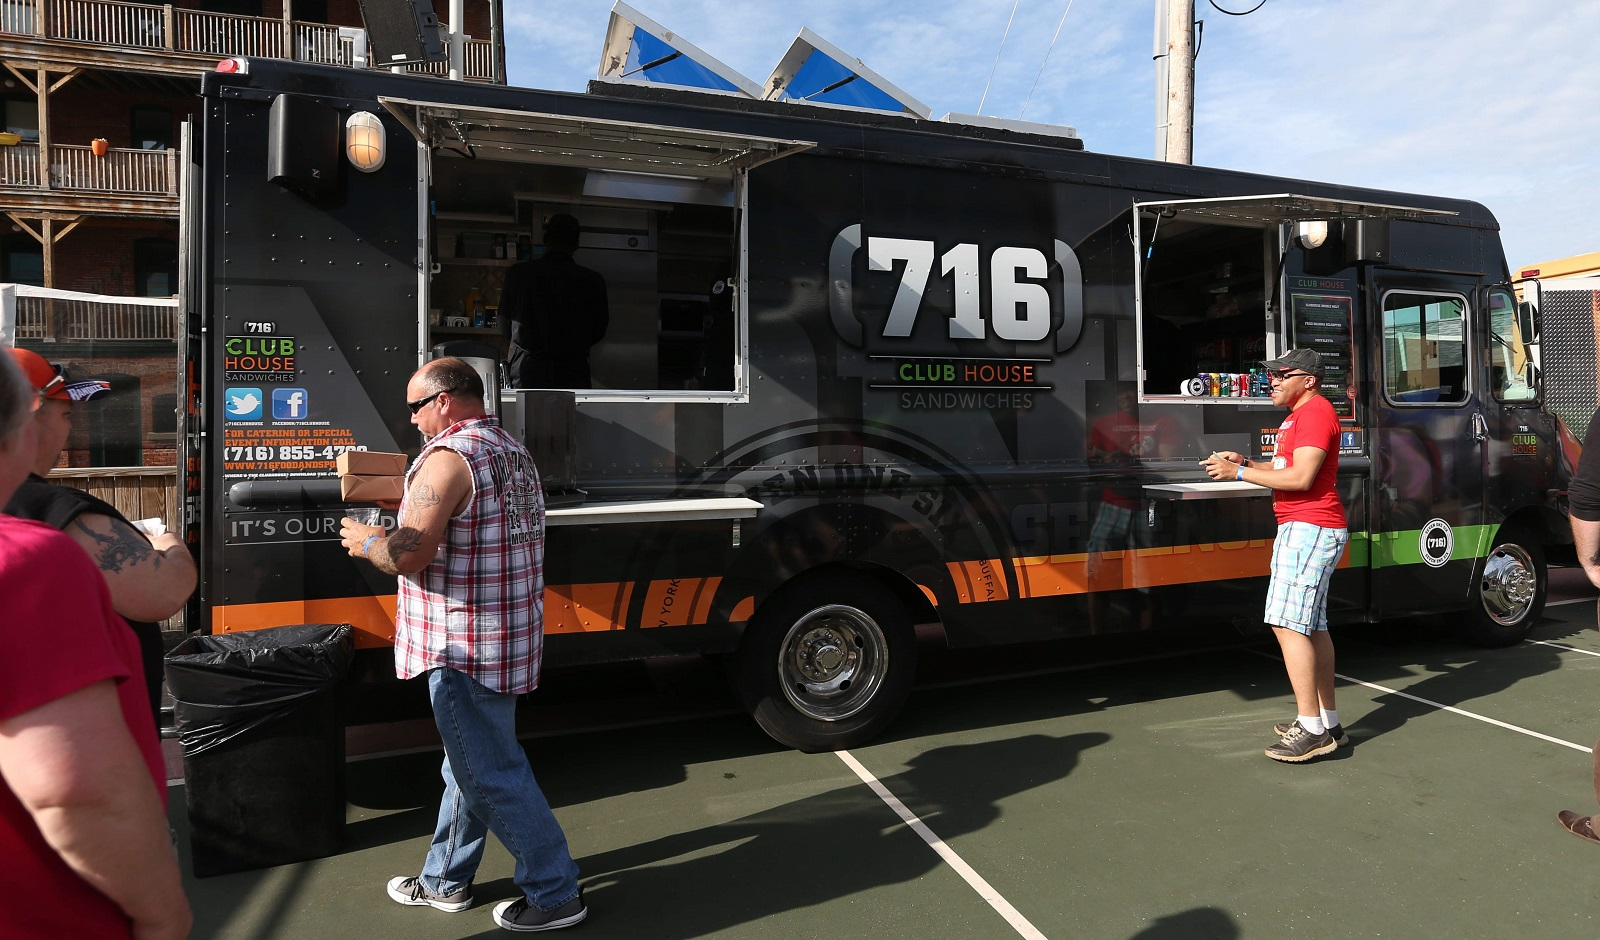 The 716 Club House Food Truck Is An Extension Of